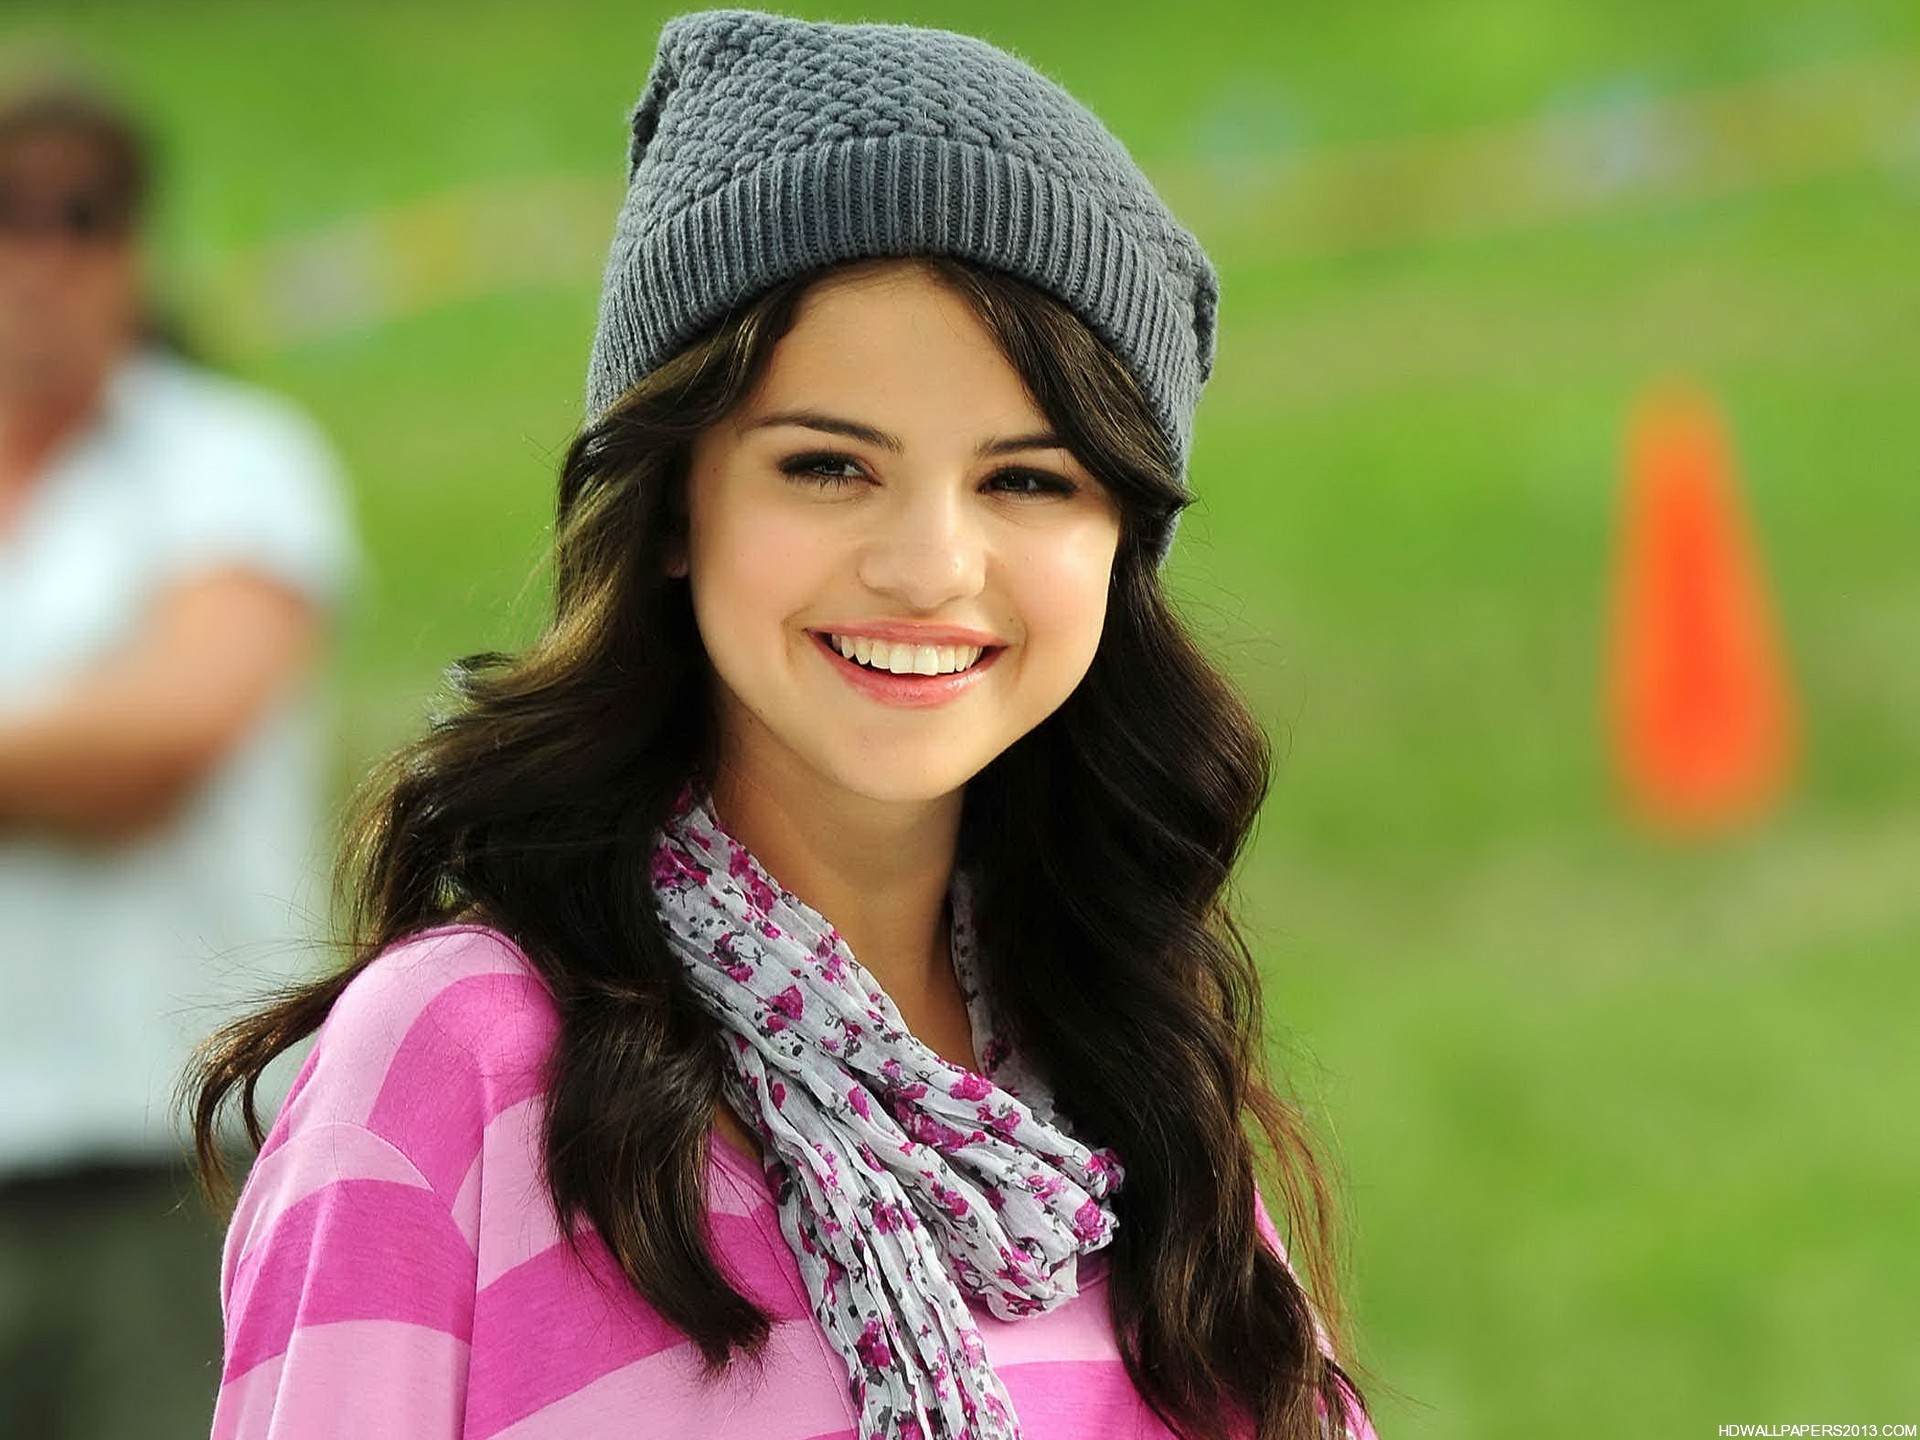 selena gomez | high definition wallpapers, high definition backgrounds